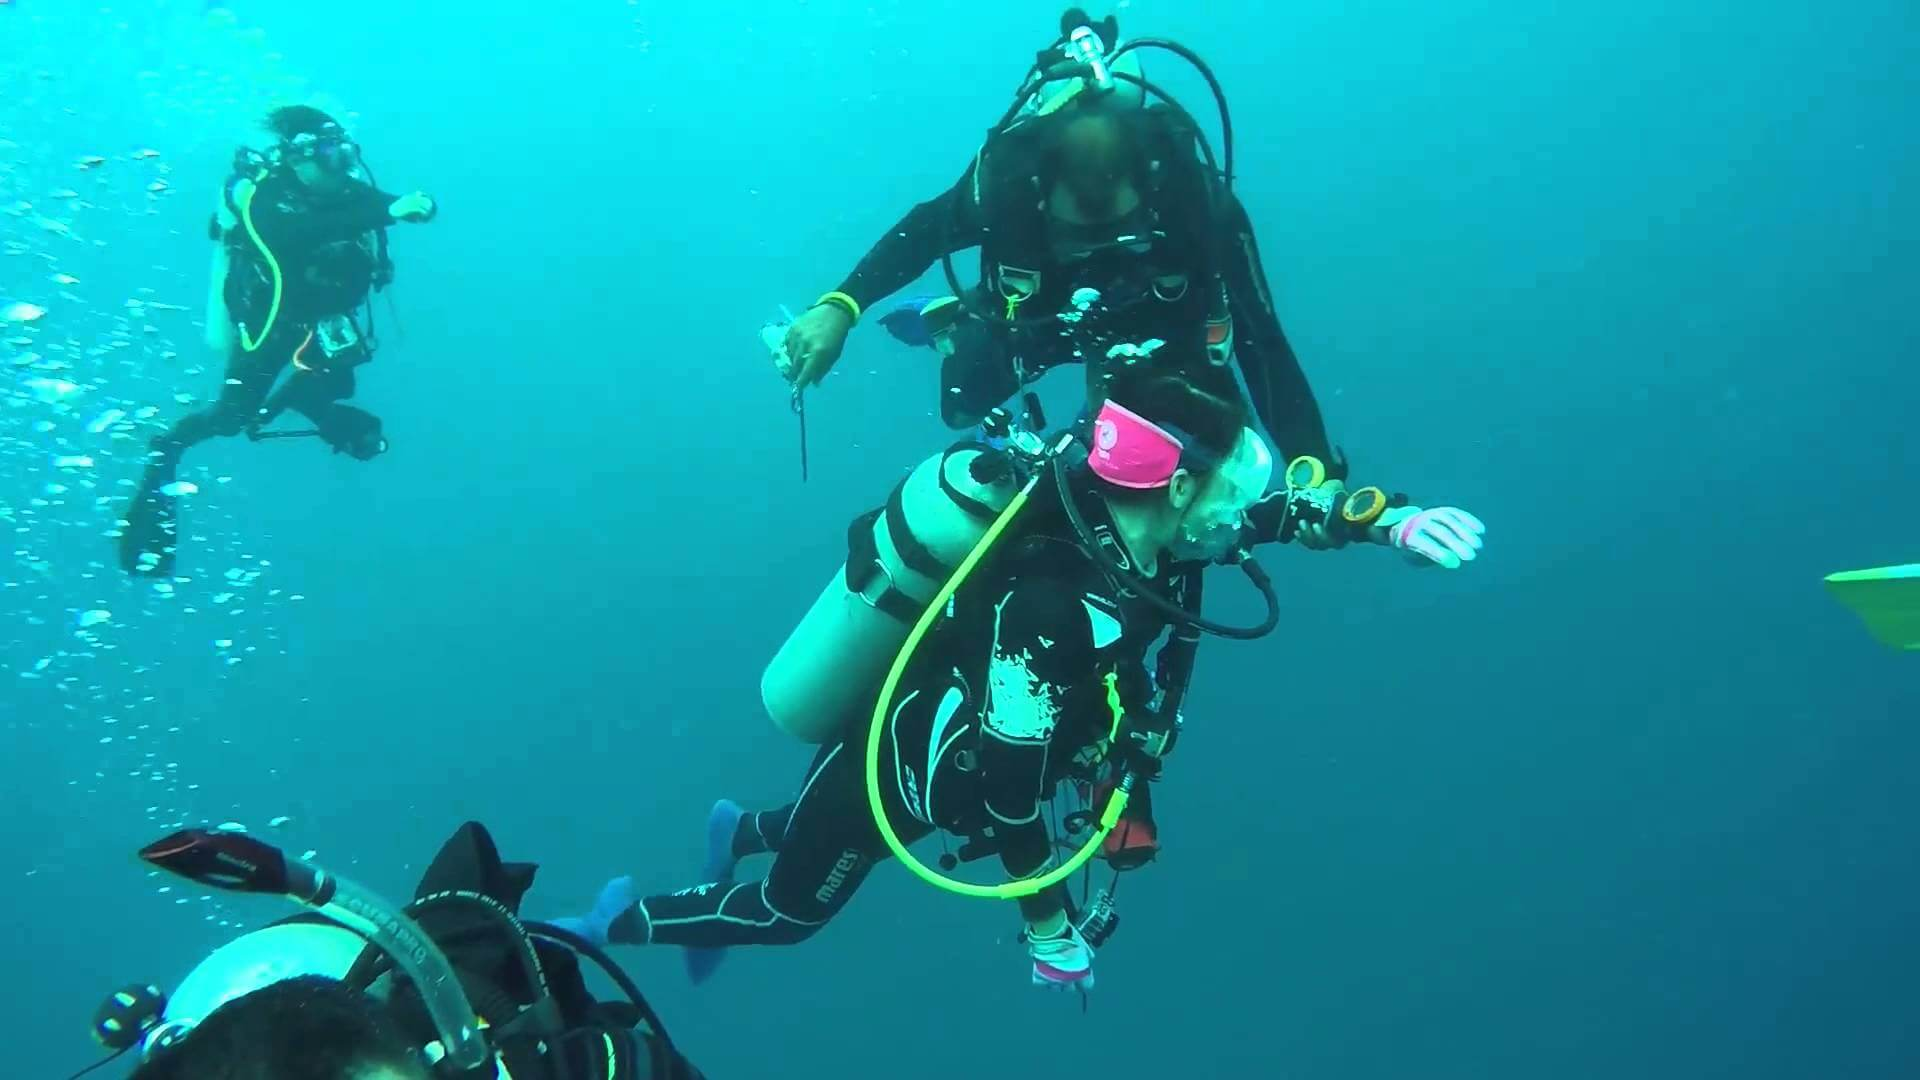 Meant especially for advanced divers